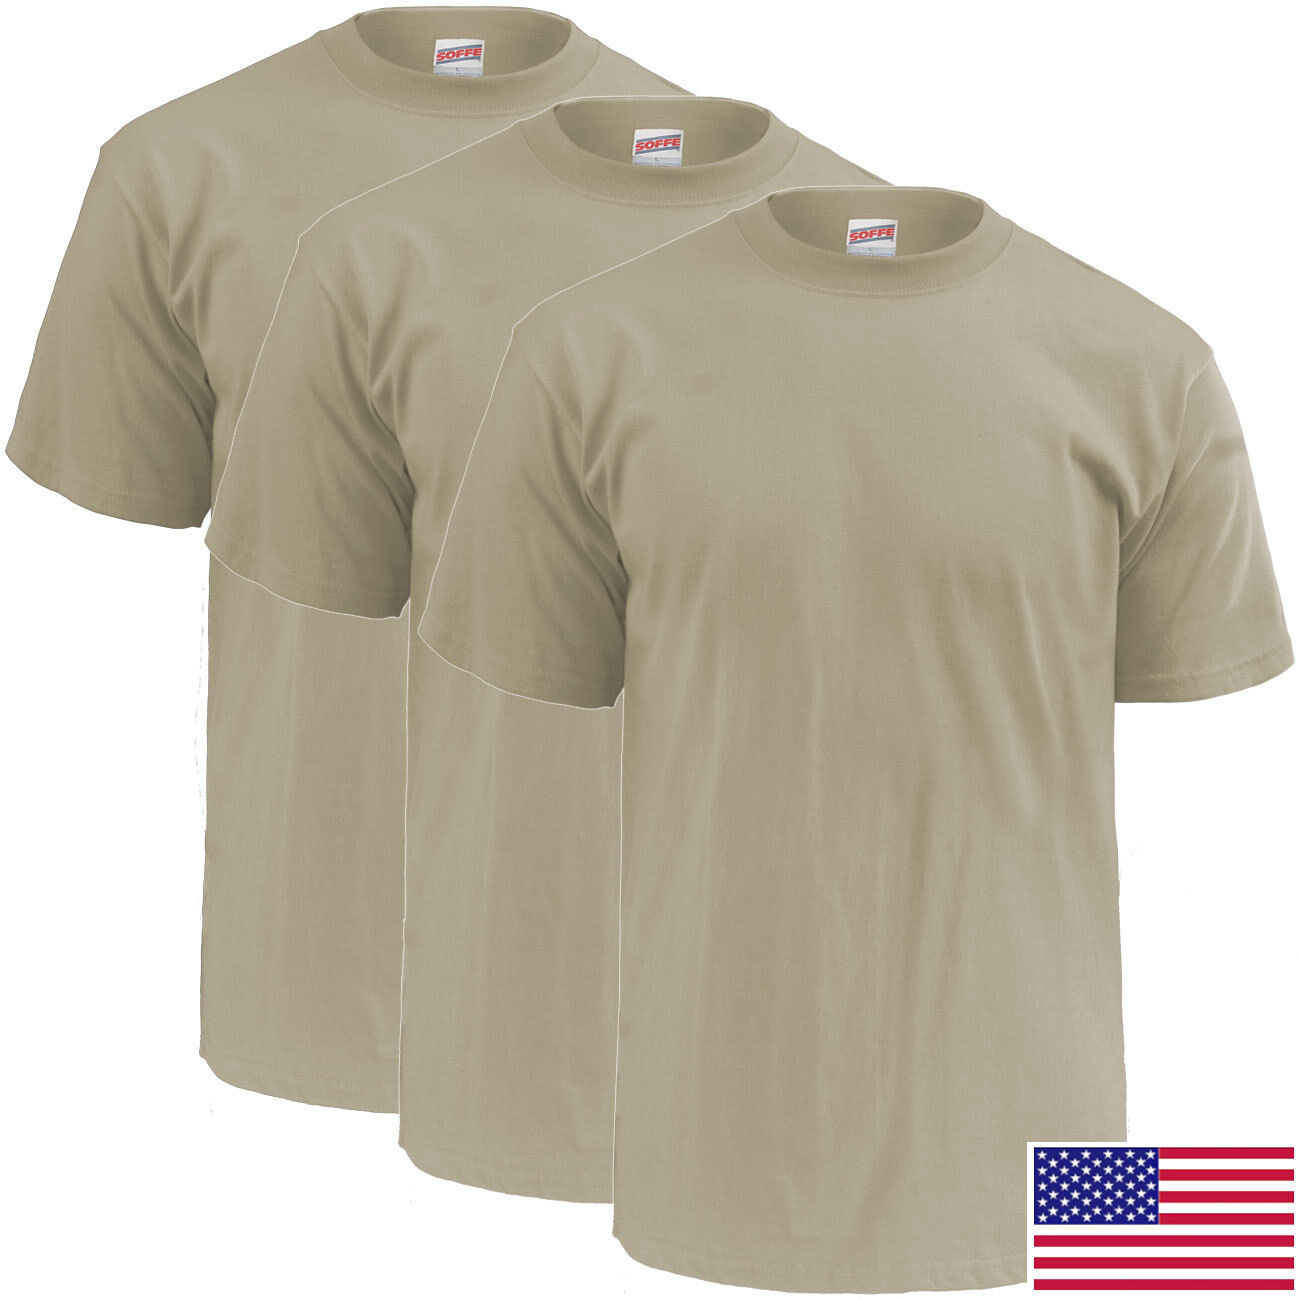 0da52179 Soffe Mens Blend 3 Pack Military T Shirts – EDGE Engineering and ...